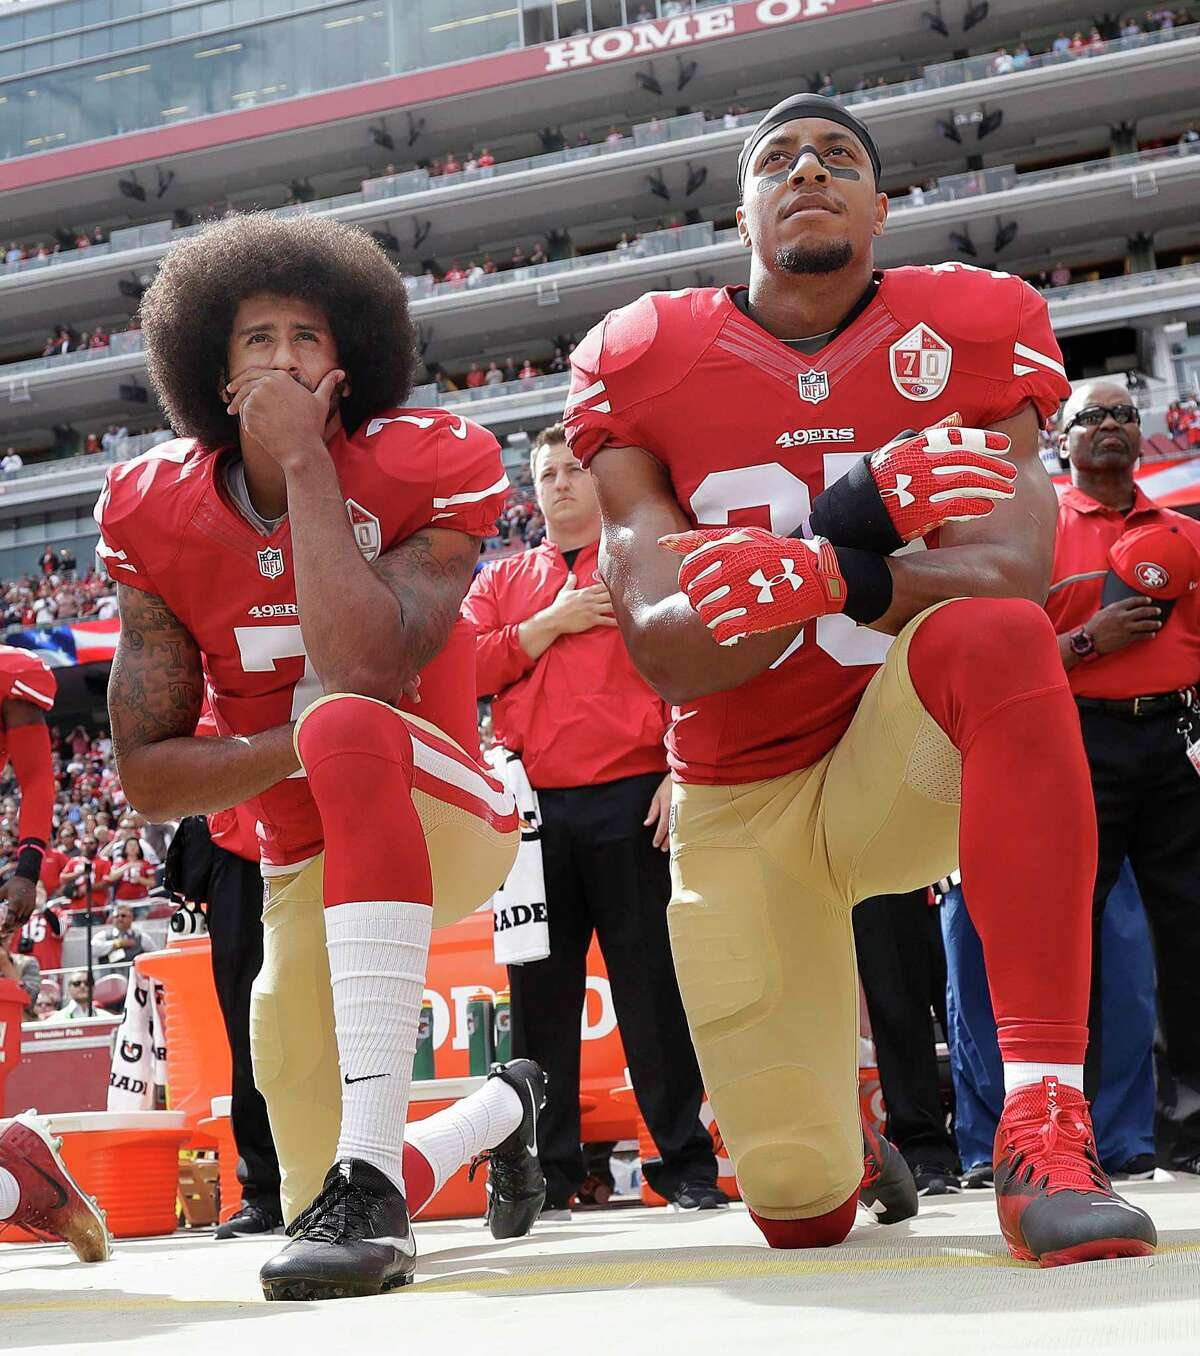 FILE - In this Oct. 2, 2016, file photo, San Francisco 49ers quarterback Colin Kaepernick, left, and safety Eric Reid kneel during the national anthem before an NFL football game against the Dallas Cowboys in Santa Clara, Calif. The Carolina Panthers have signed the free agent safety to a one-year contract. Terms of the deal were not announced Thursday, Sept. 27, 2018.